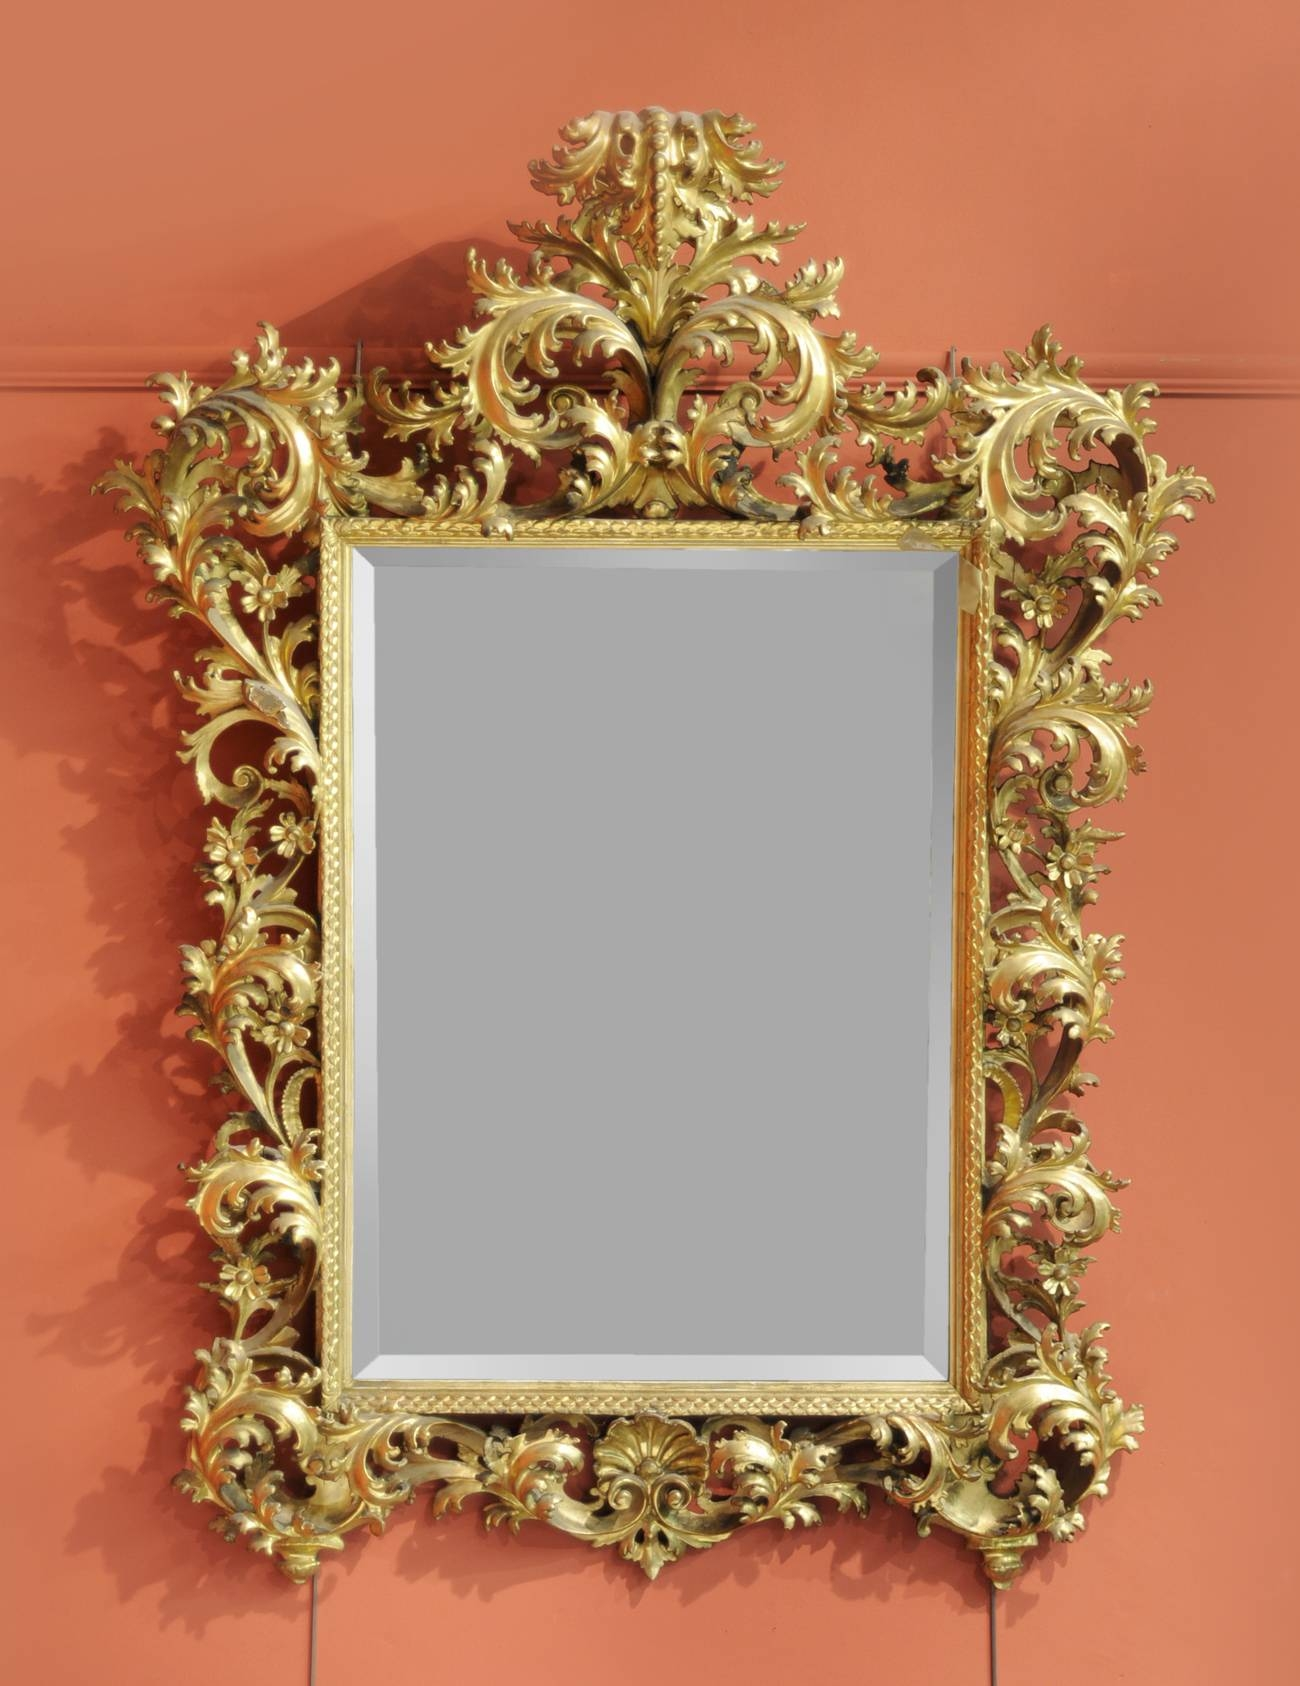 Tennants Auctioneers: A Rococo Style Giltwood And Gesso Wall Mirror throughout Rococo Style Mirrors (Image 11 of 15)